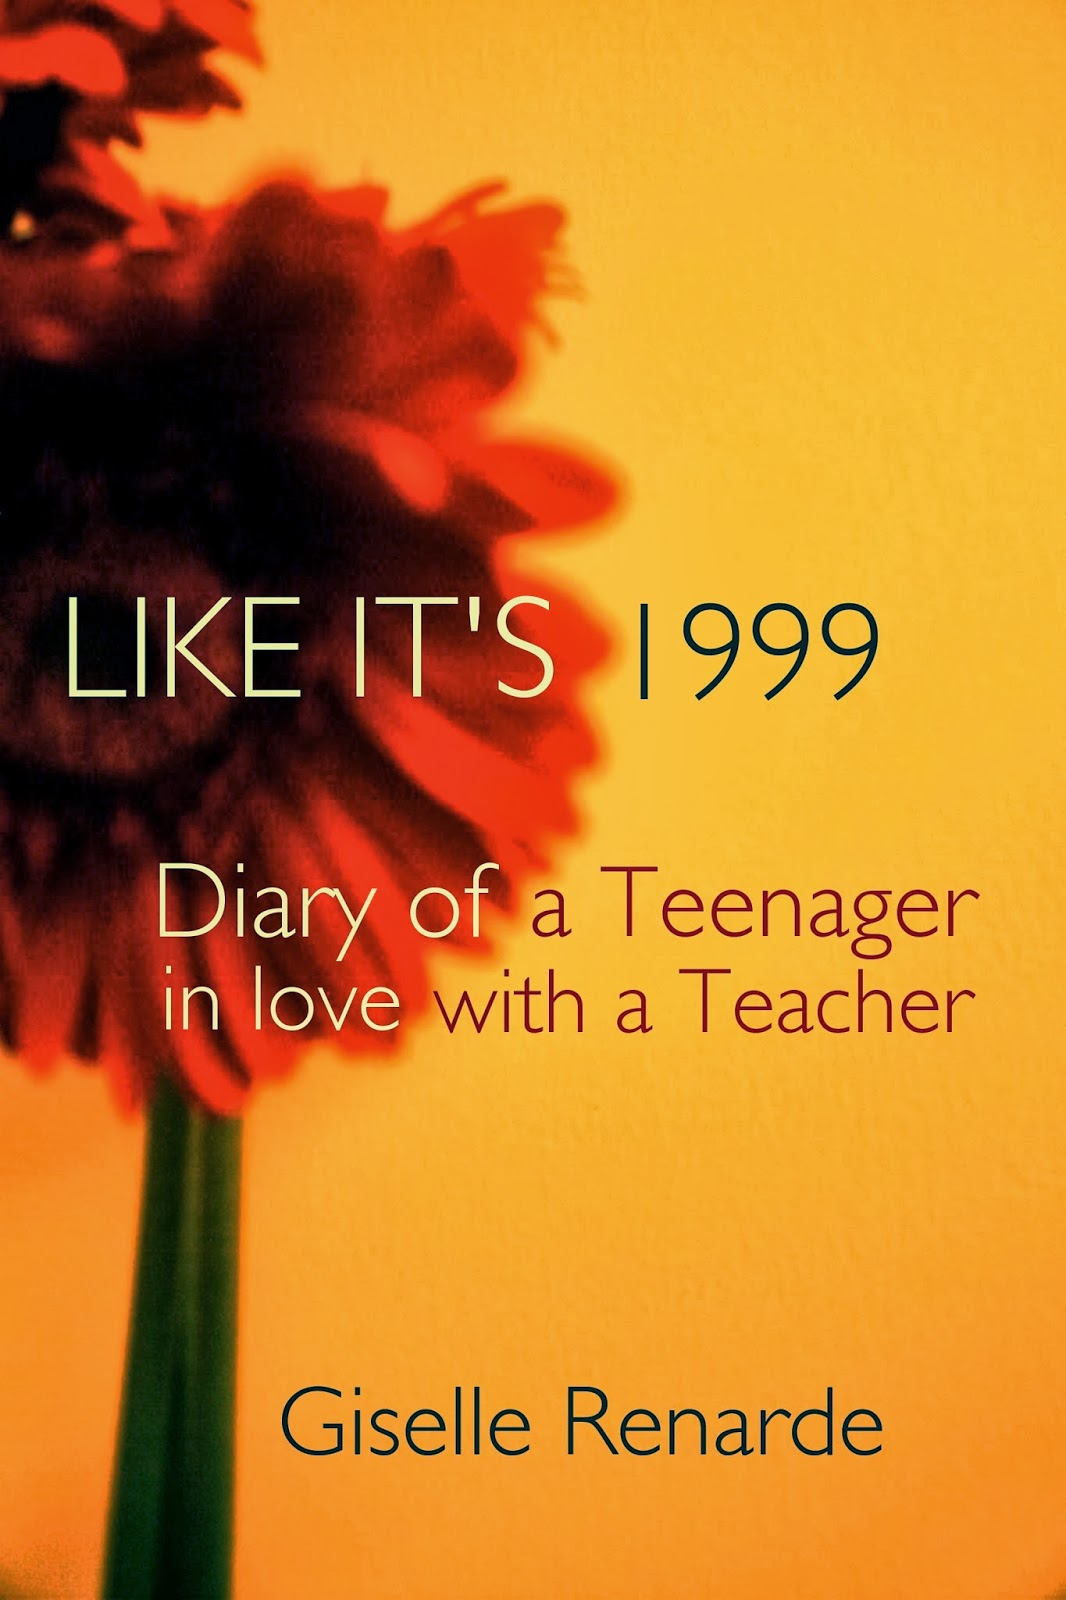 http://www.amazon.com/LIKE-ITS-1999-Teenager-Teacher-ebook/dp/B00IZOQLL0